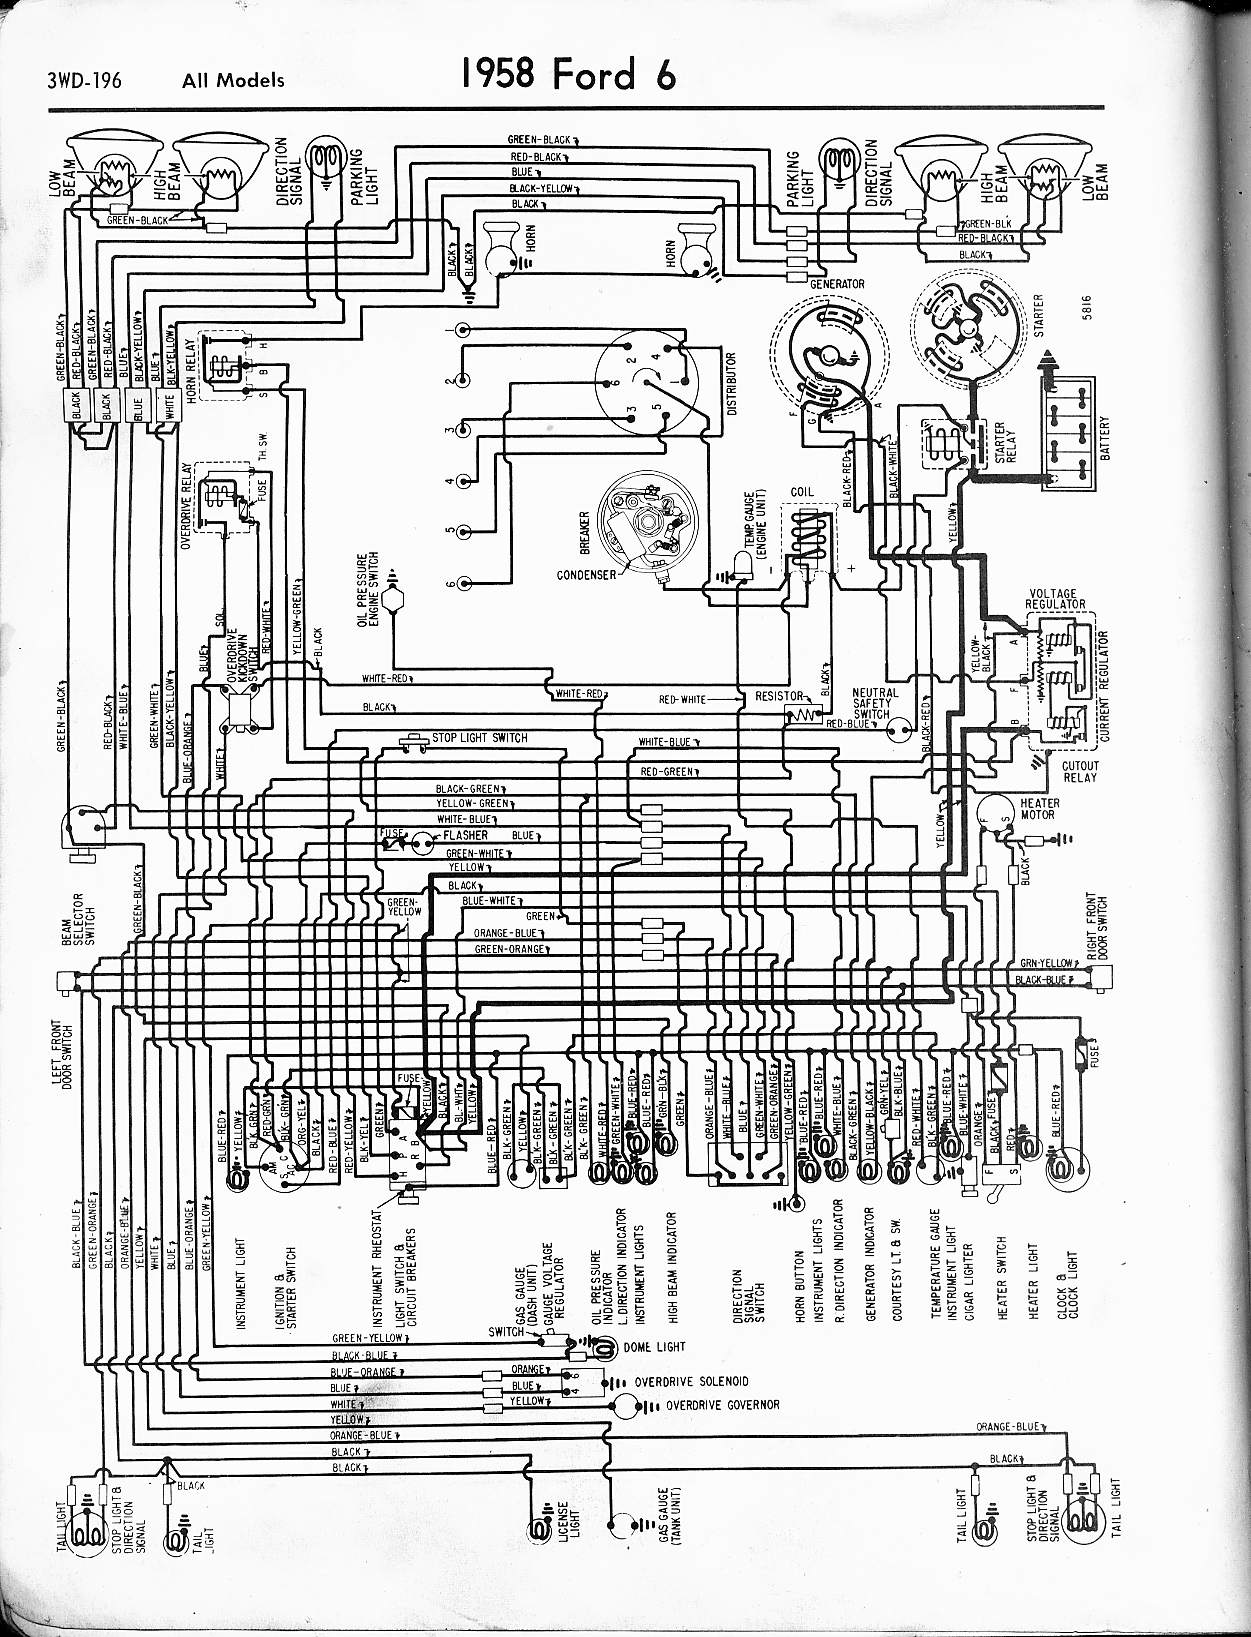 MWire5765 196 57 65 ford wiring diagrams 1965 thunderbird alternator wiring diagram at soozxer.org